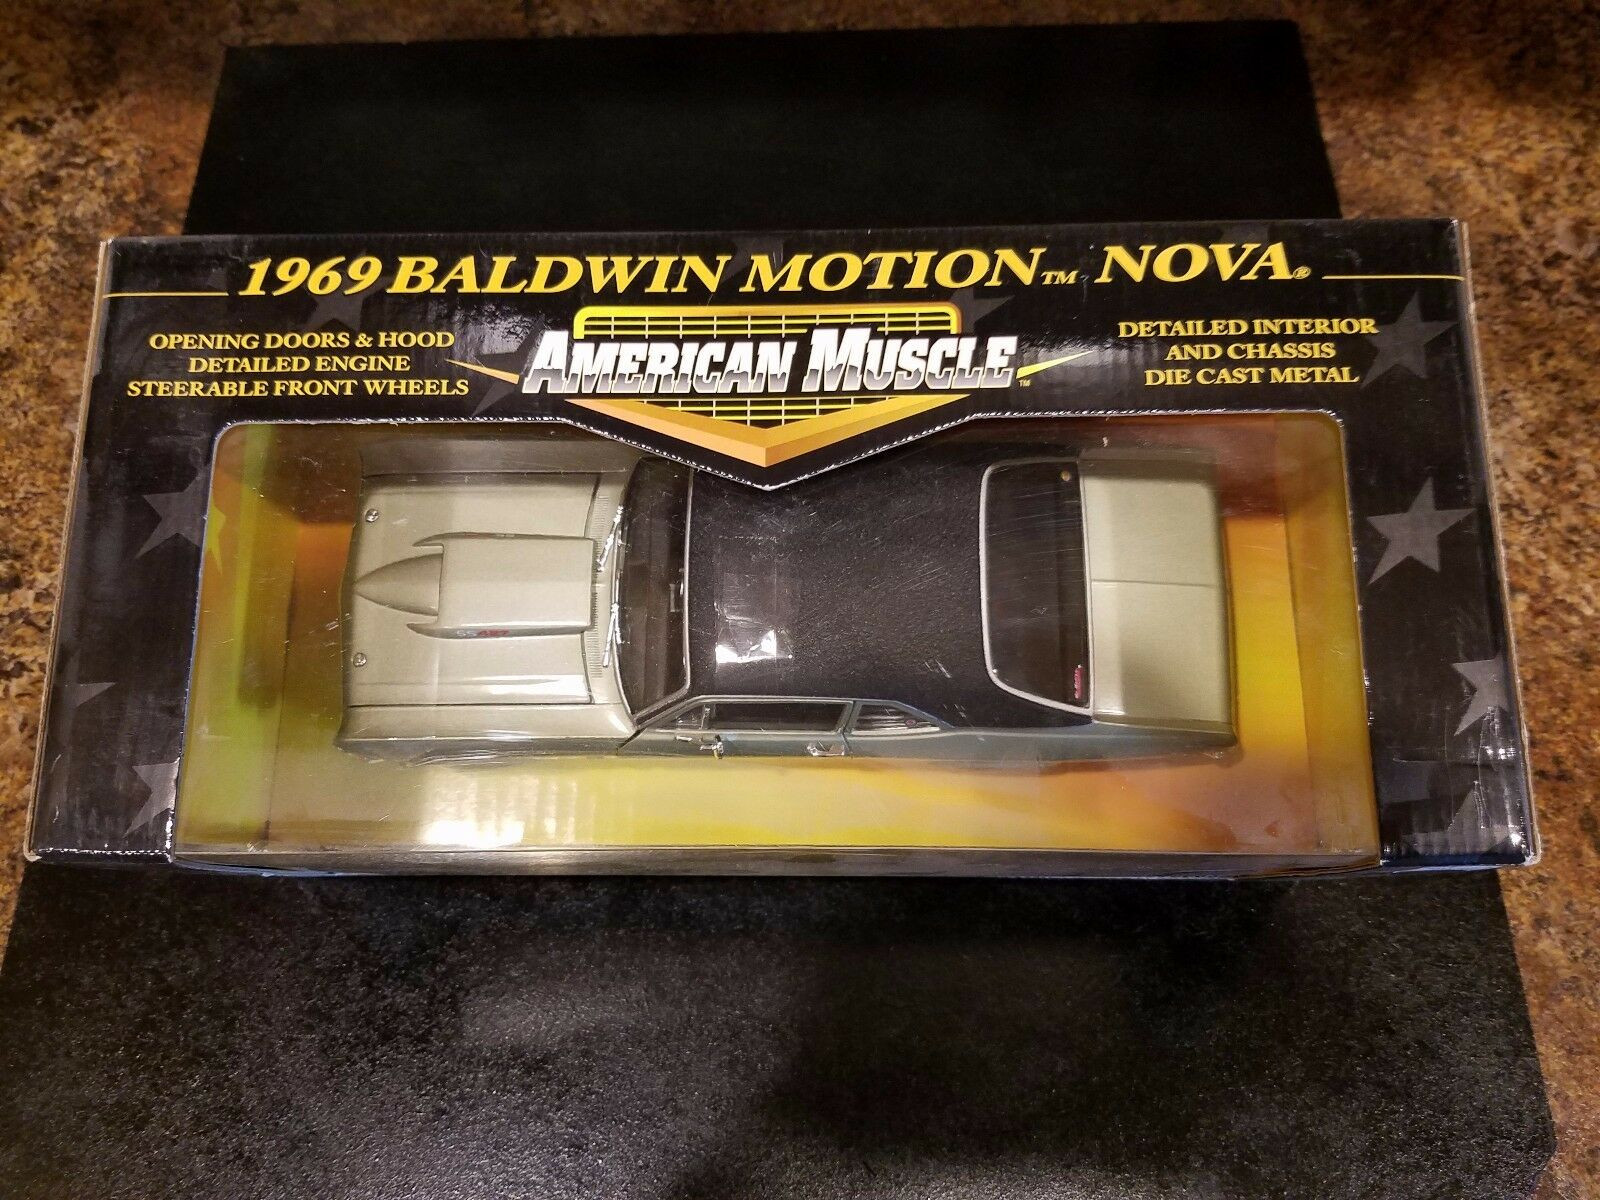 ERTL collectibles AMERICAN MUSCLE 1 18 scale 1969 Baldwin Baldwin Baldwin Motion Nova 07ec4f